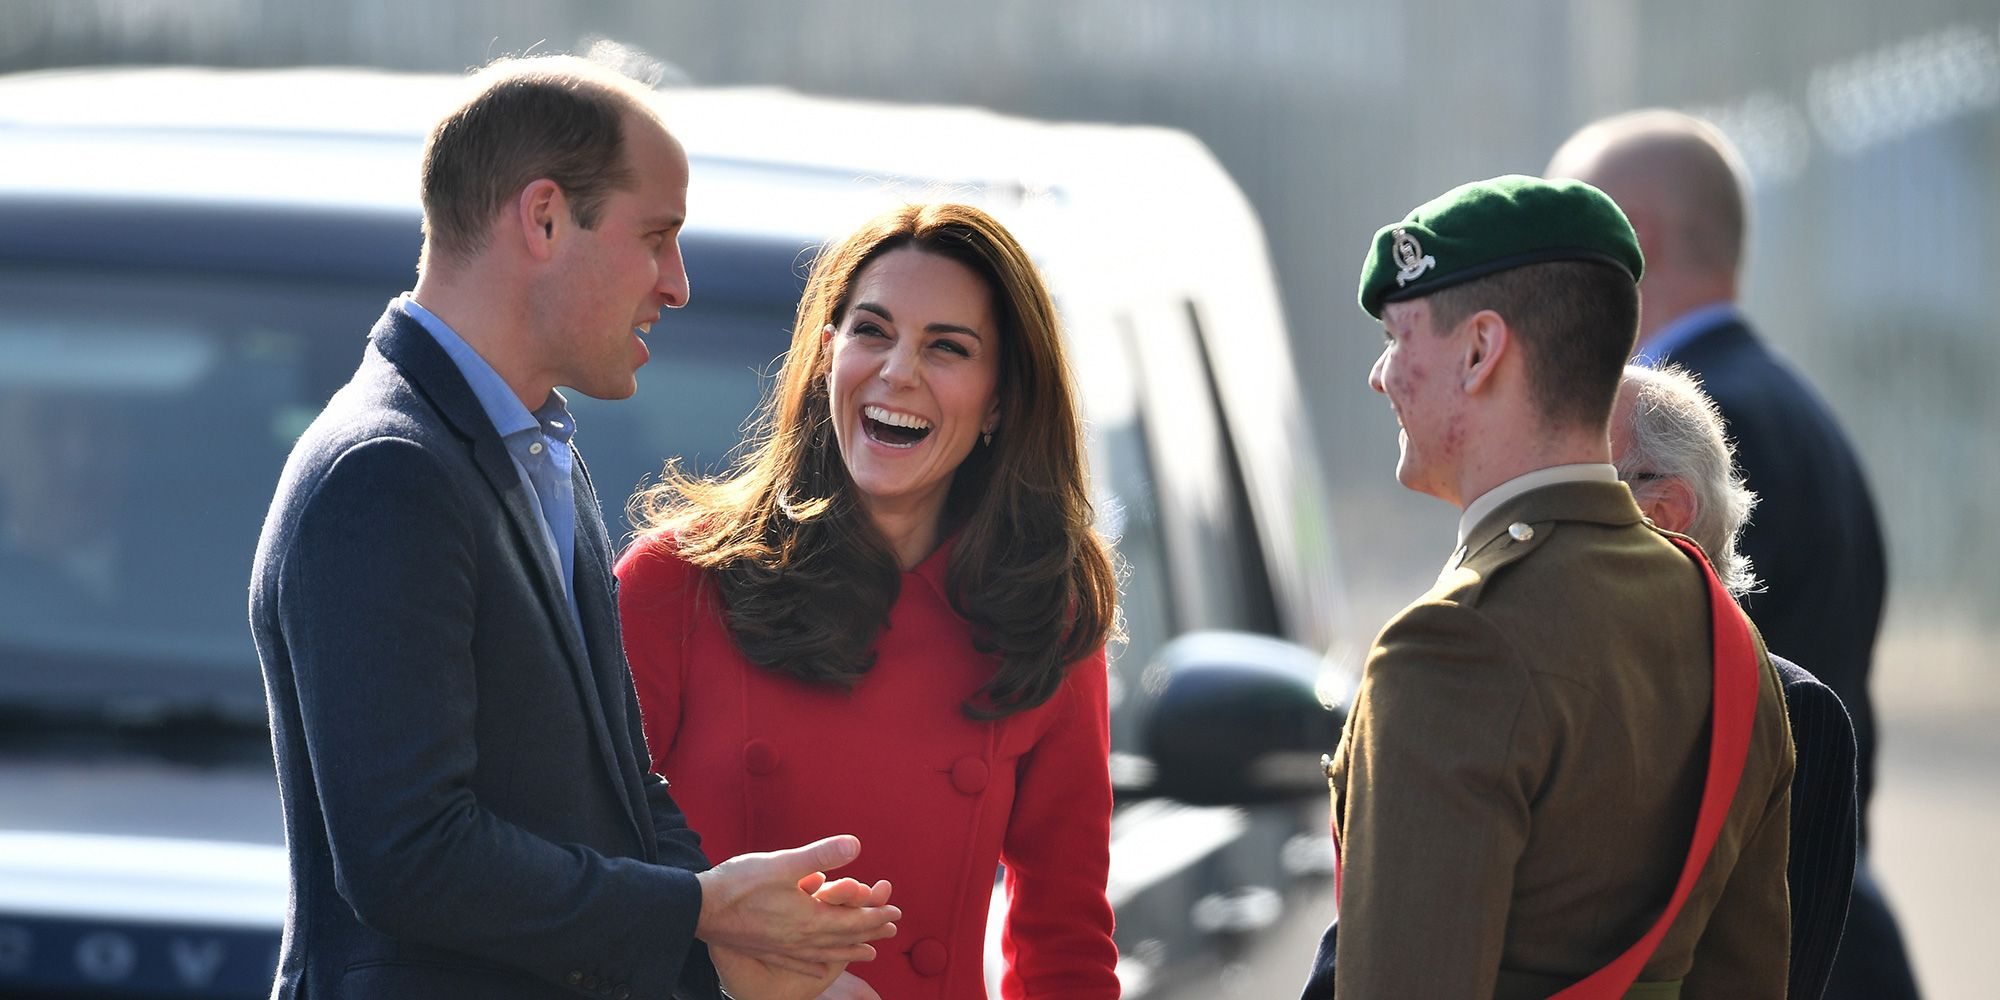 Kate Middleton & Prince William's Belfast trip: why it was secret